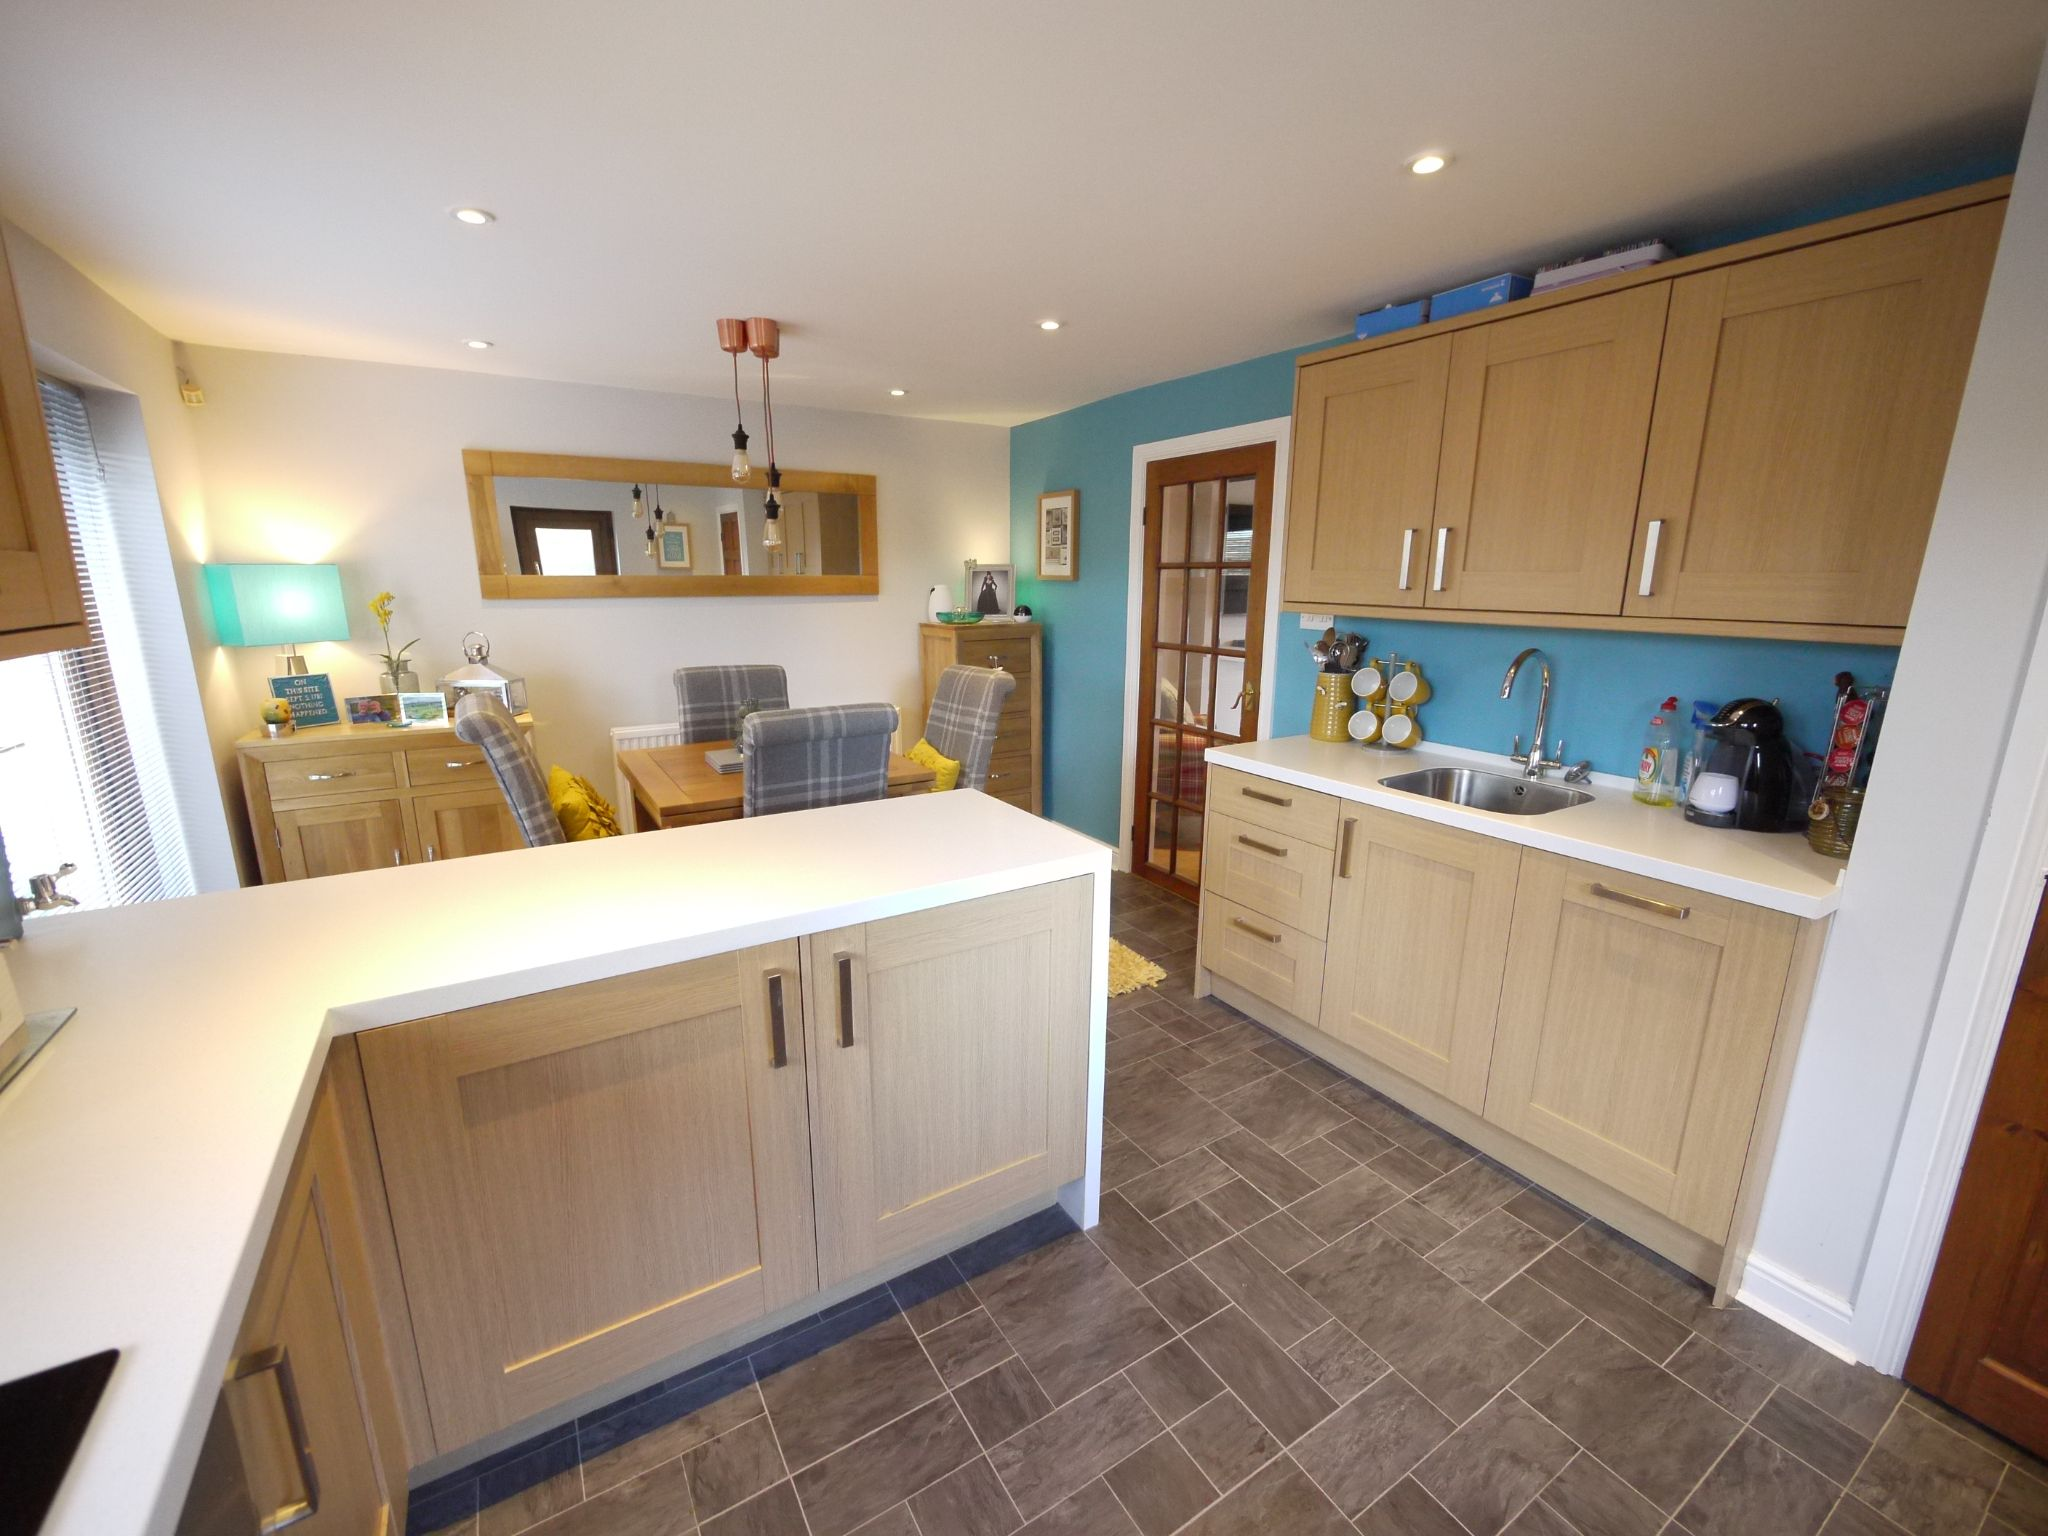 3 bedroom detached house SSTC in Brighouse - Photograph 9.